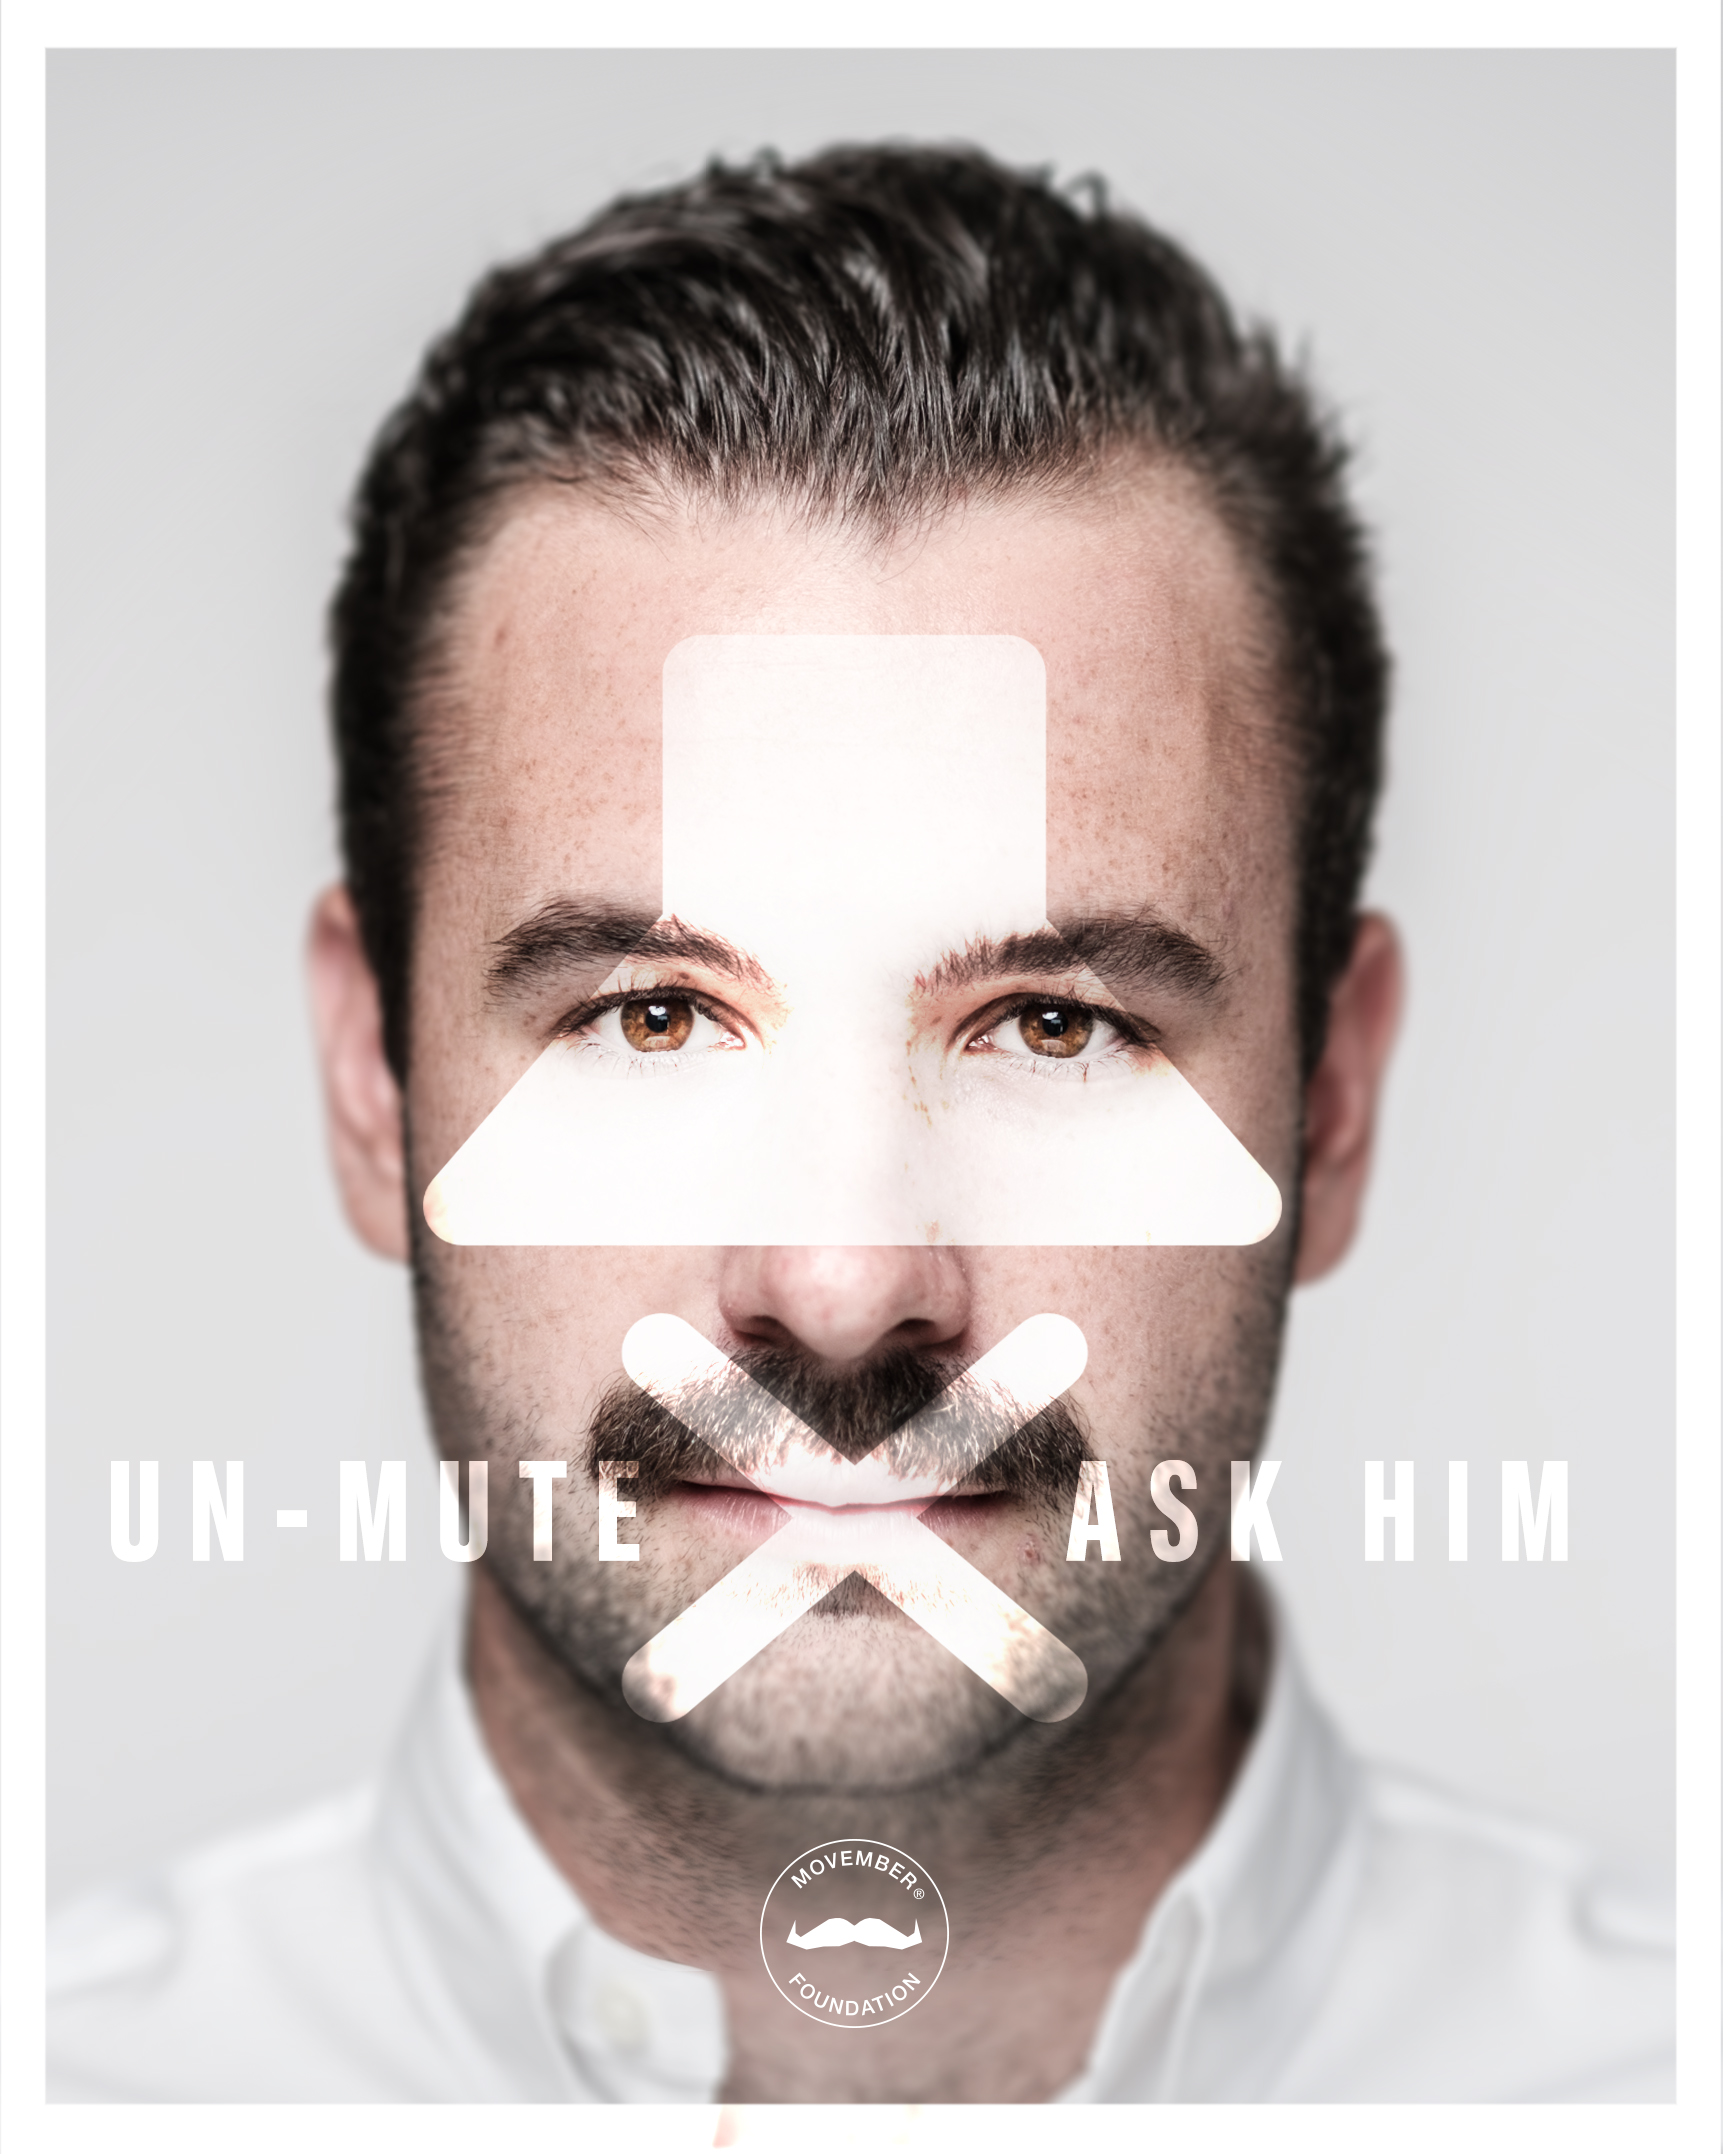 Campaign pic from Movember Foundation's Unmute- Ask Him campaign